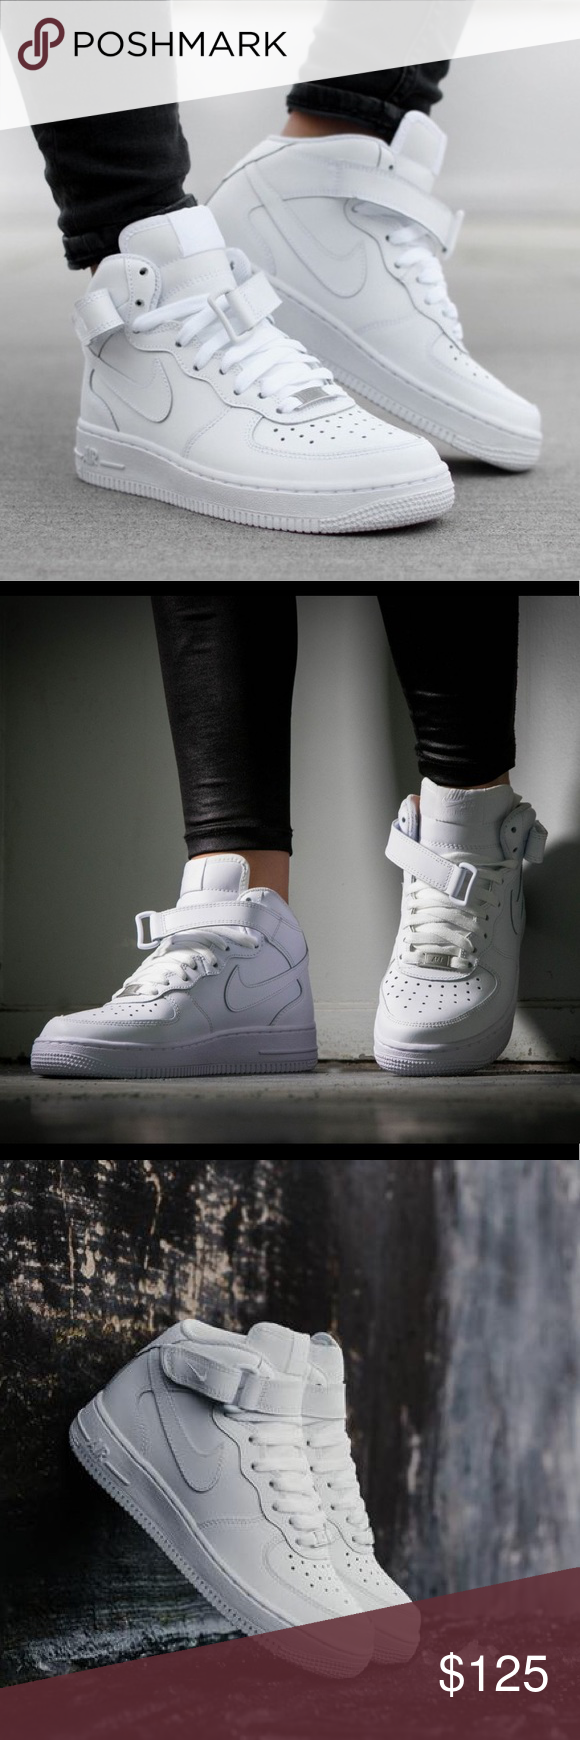 Nike Air Force 1 Mid All White Shoes New Brand New Without Box